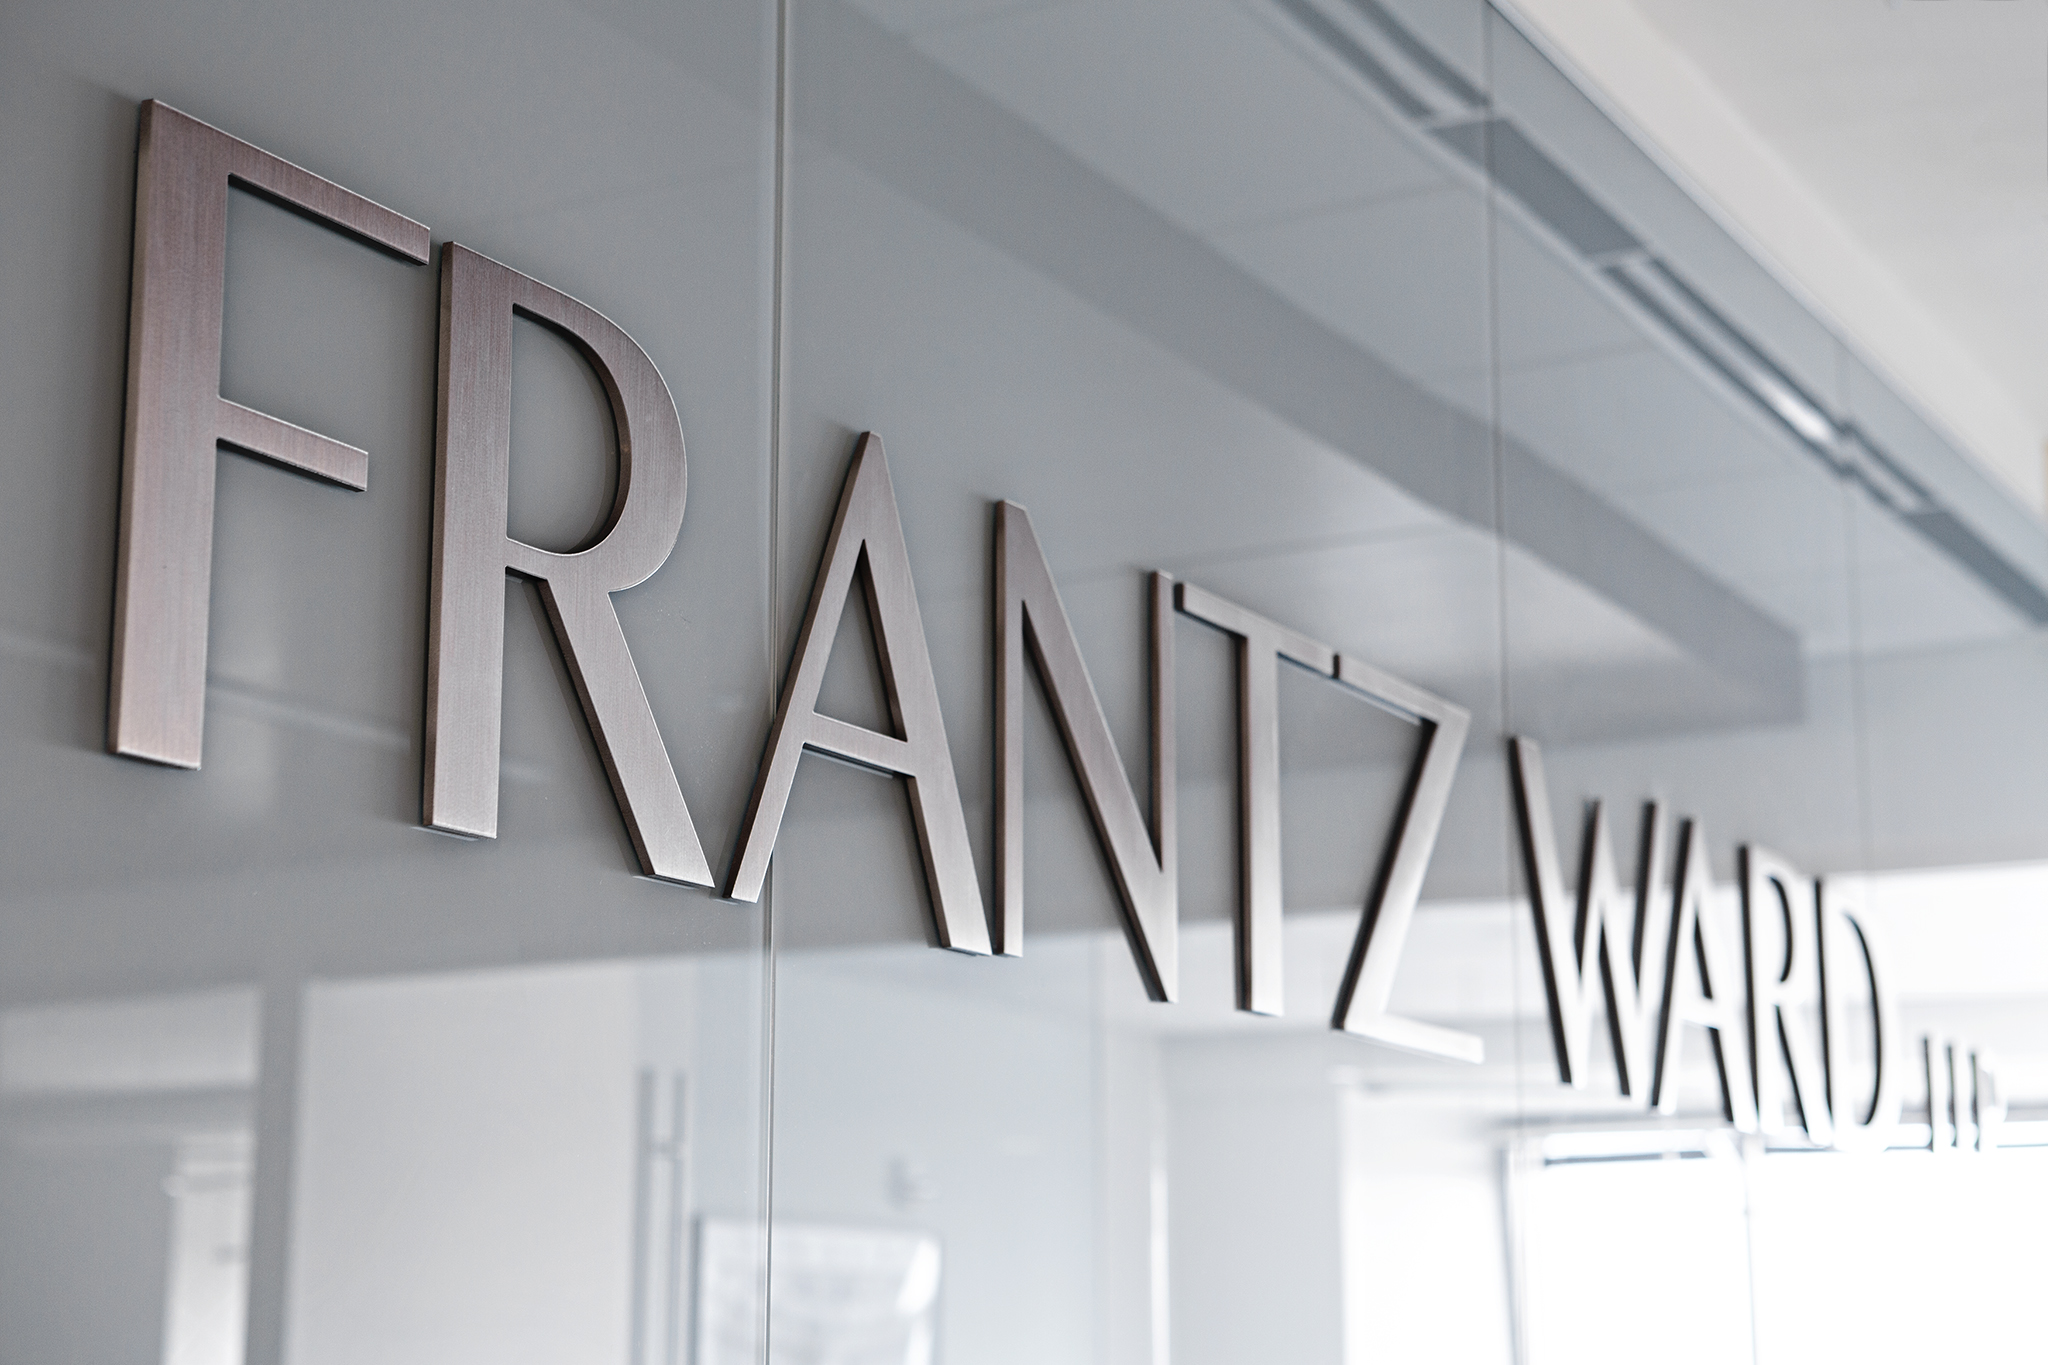 Frantz Ward Acquires Kadish, Hinkel & Weibel to Expand Capabilities and Better Service Clients Thumbnail